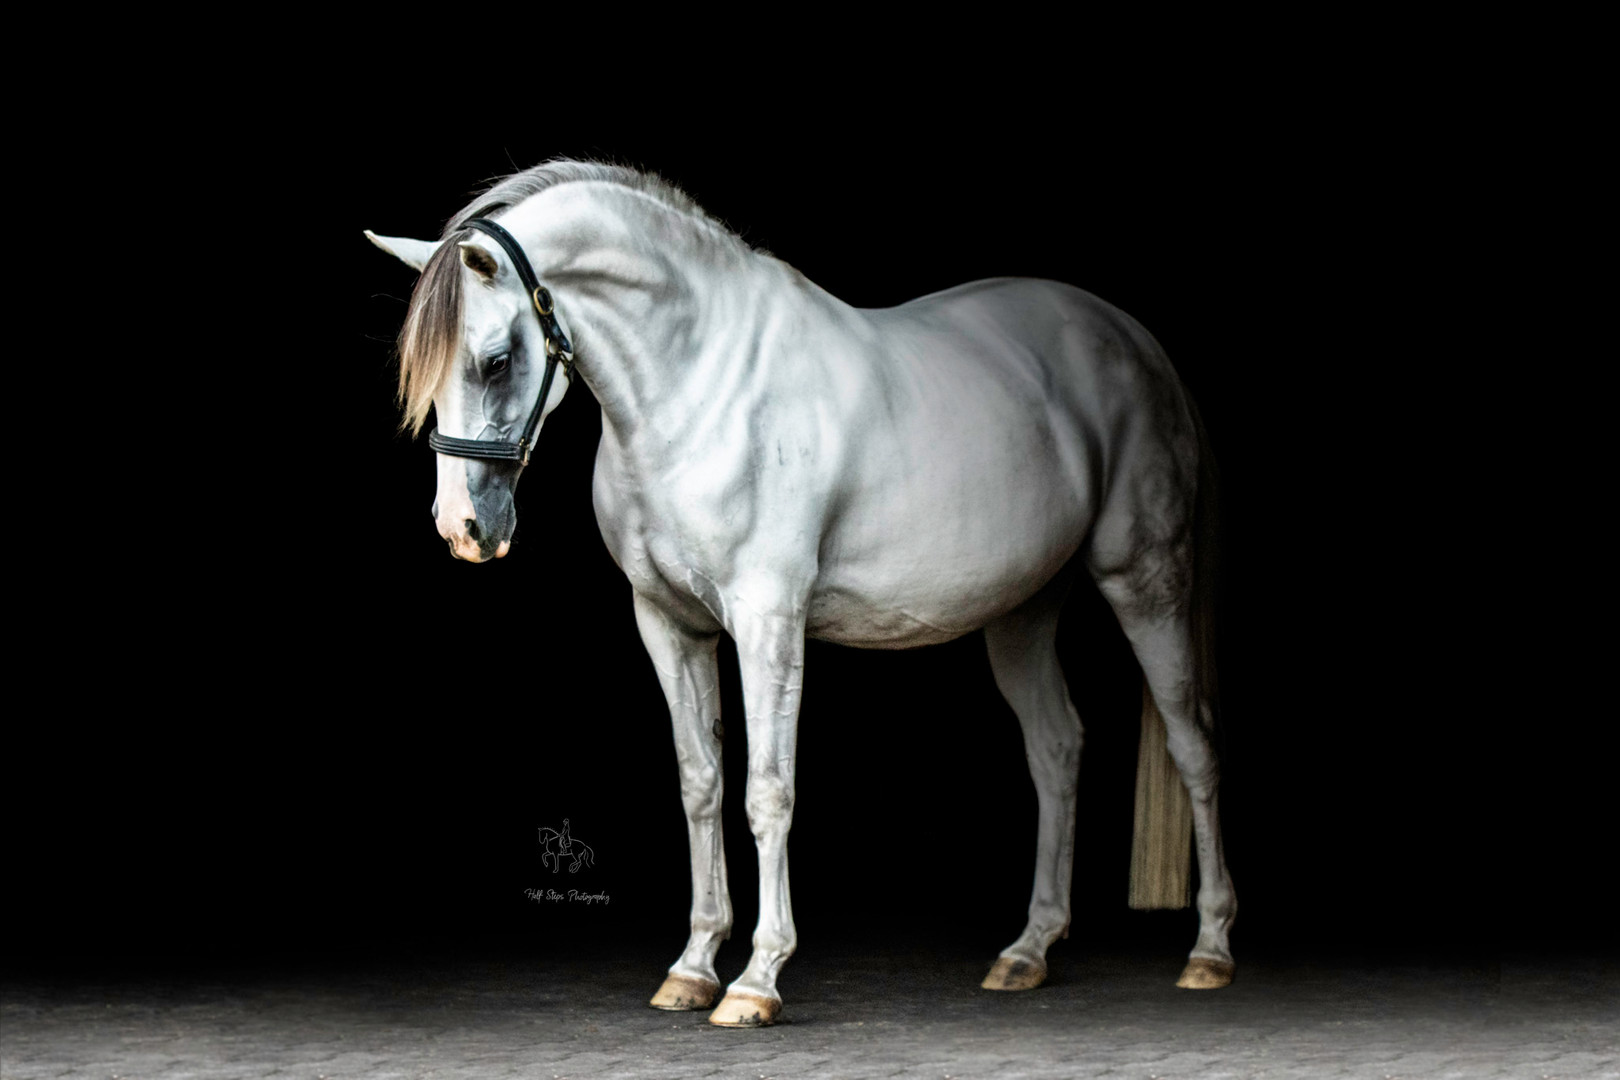 Black Background Equine Fine Art session